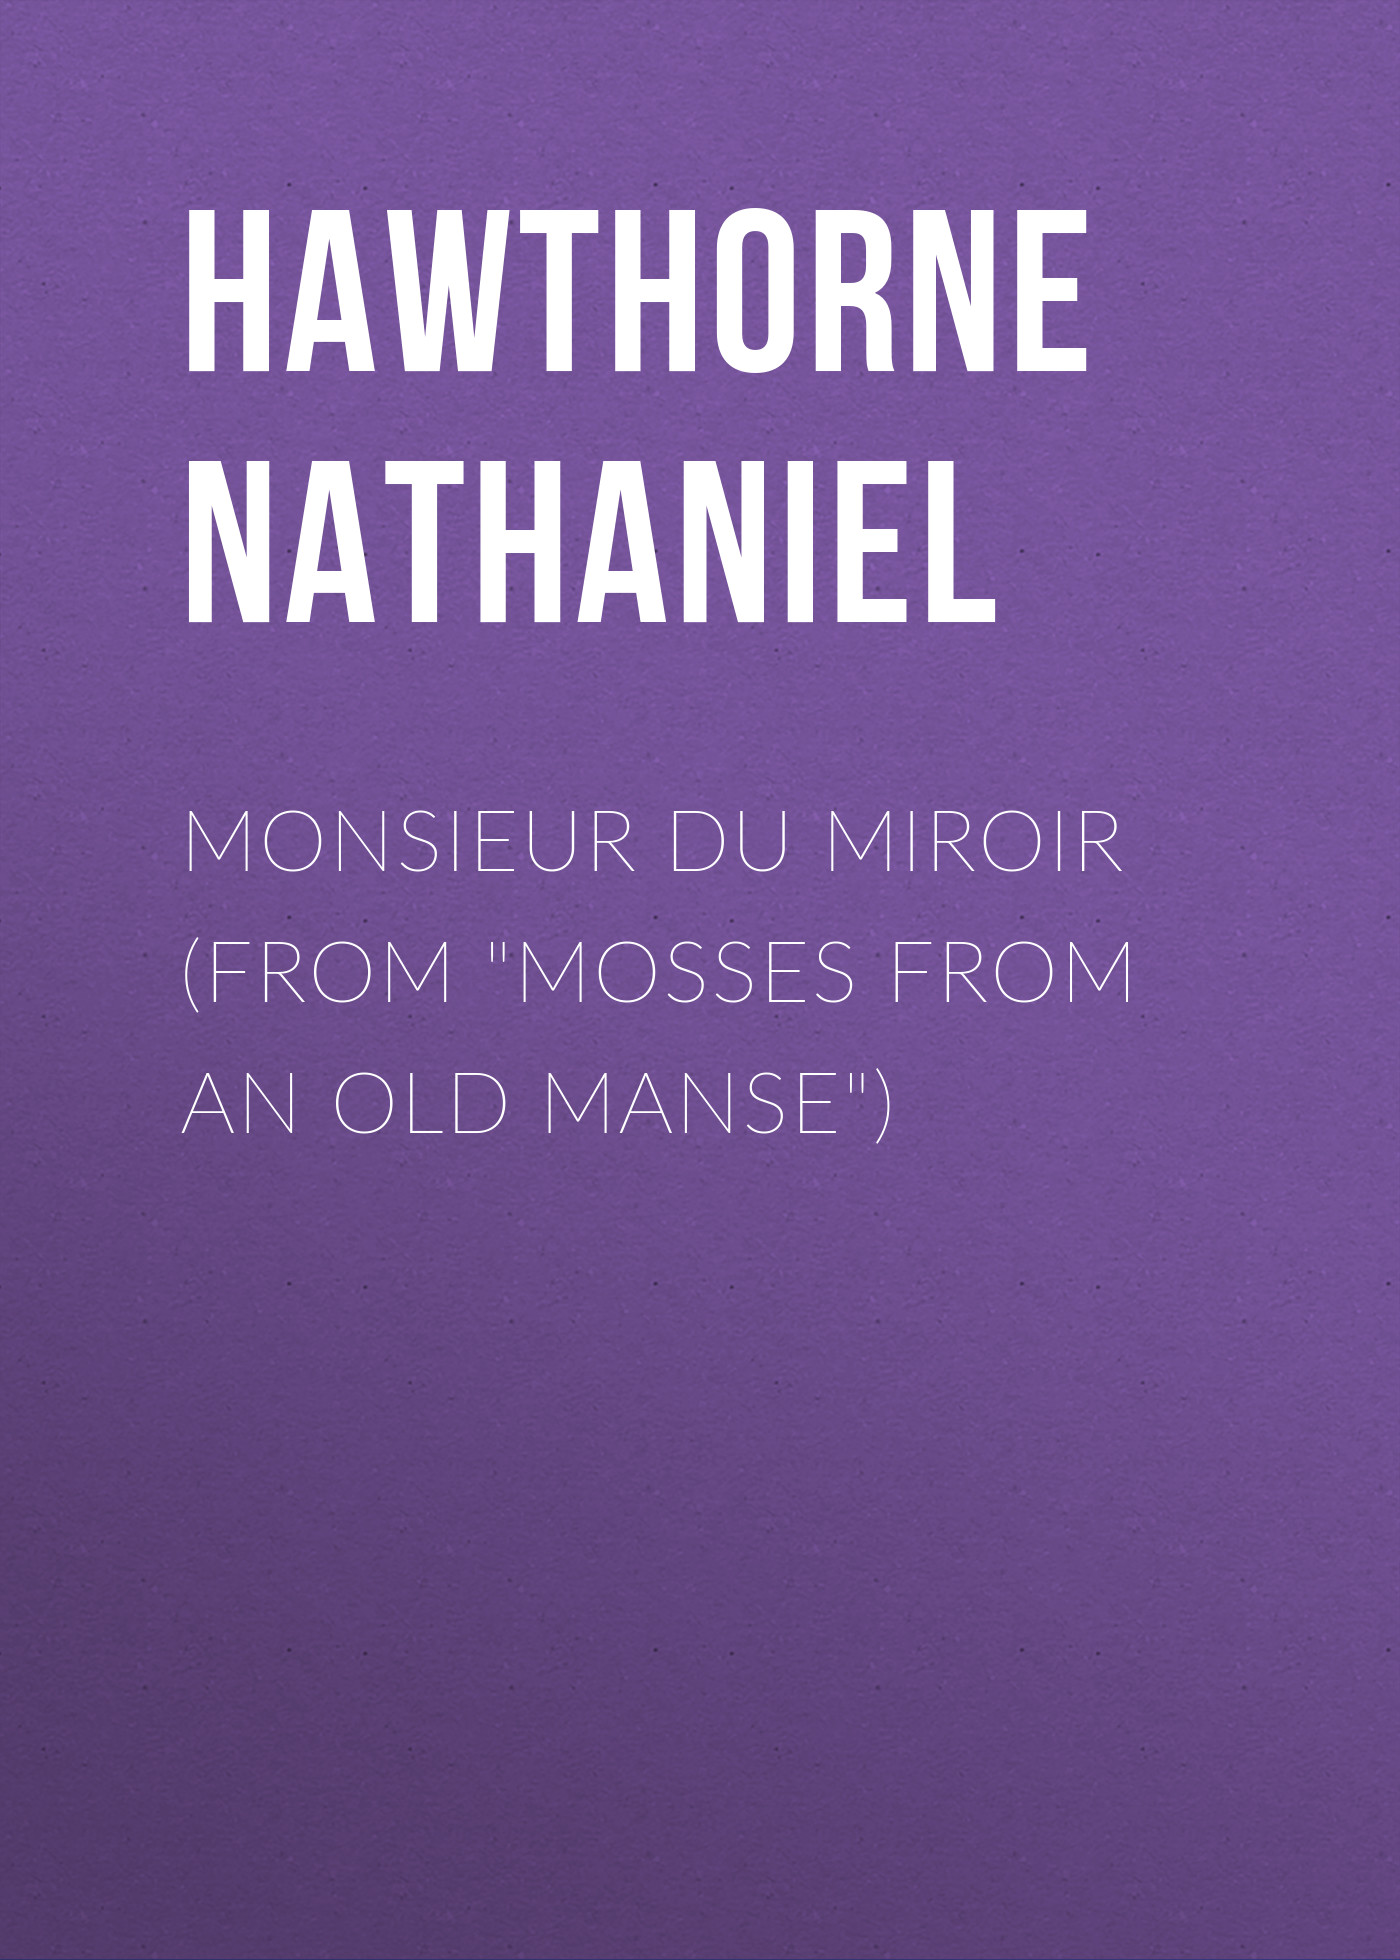 Hawthorne Nathaniel Monsieur du Miroir (From Mosses from an Old Manse) hawthorne n mosses from an old manse the blithedale romance